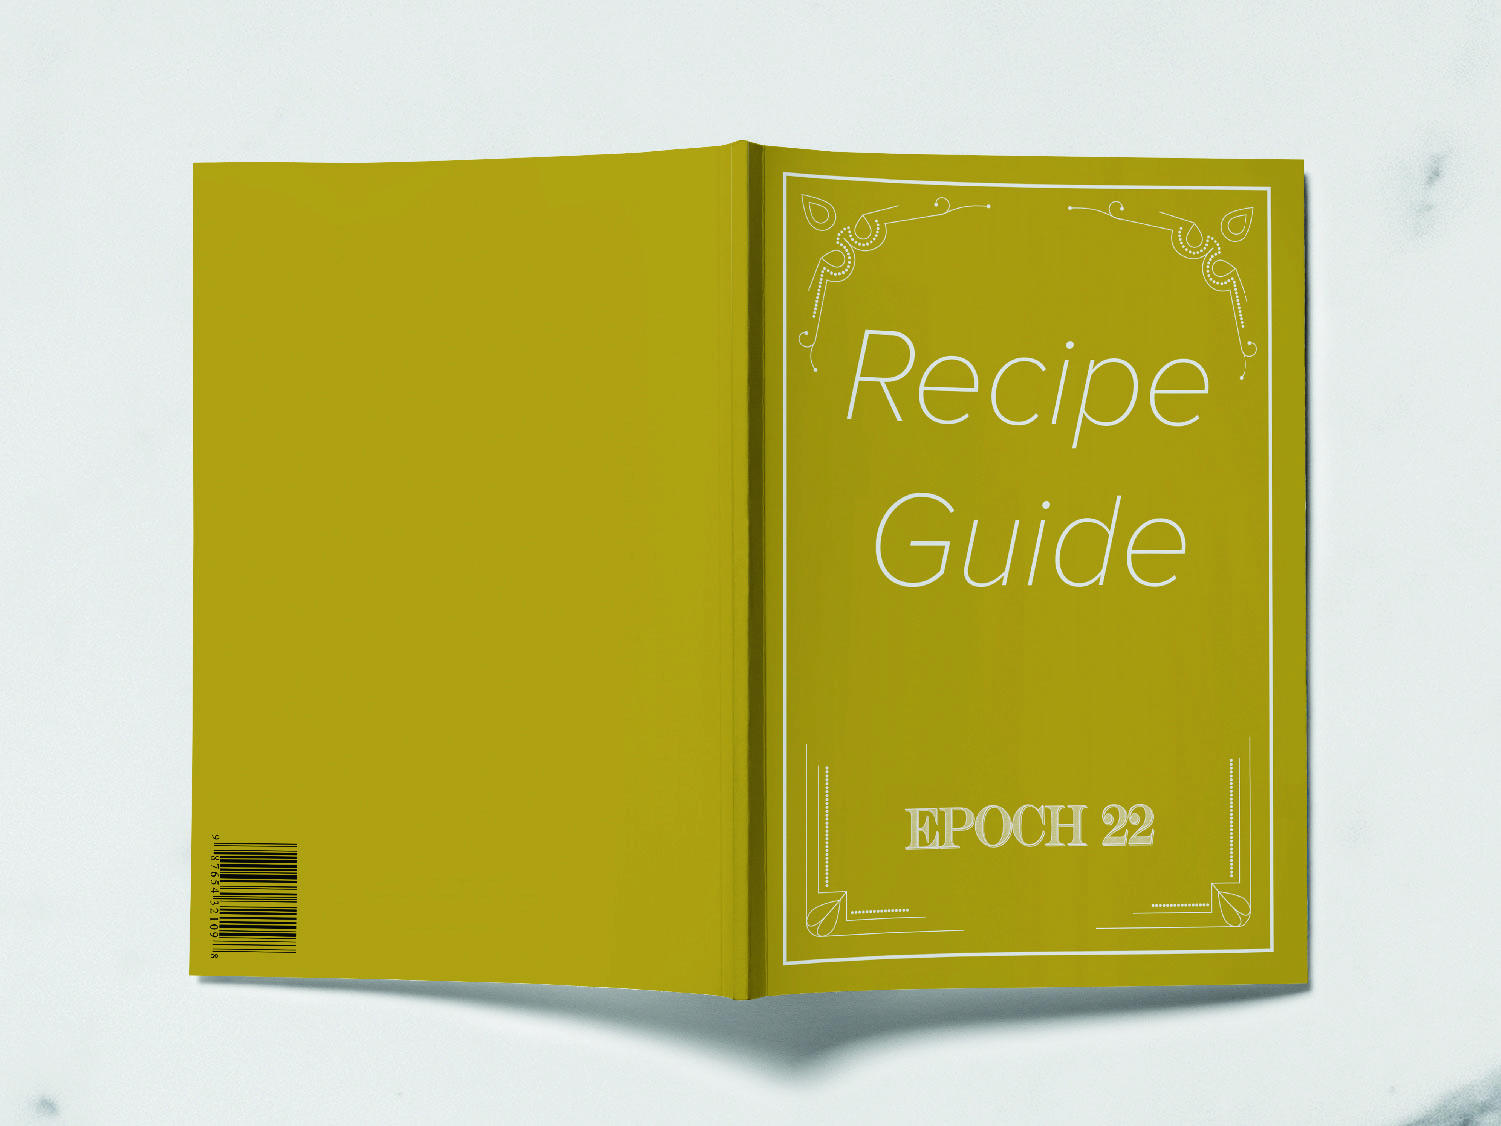 Epoch 22 Recipe Guide recipe book recipe typography distillery alcohol packaging package mockup package design packagedesign package logo illustration design branding